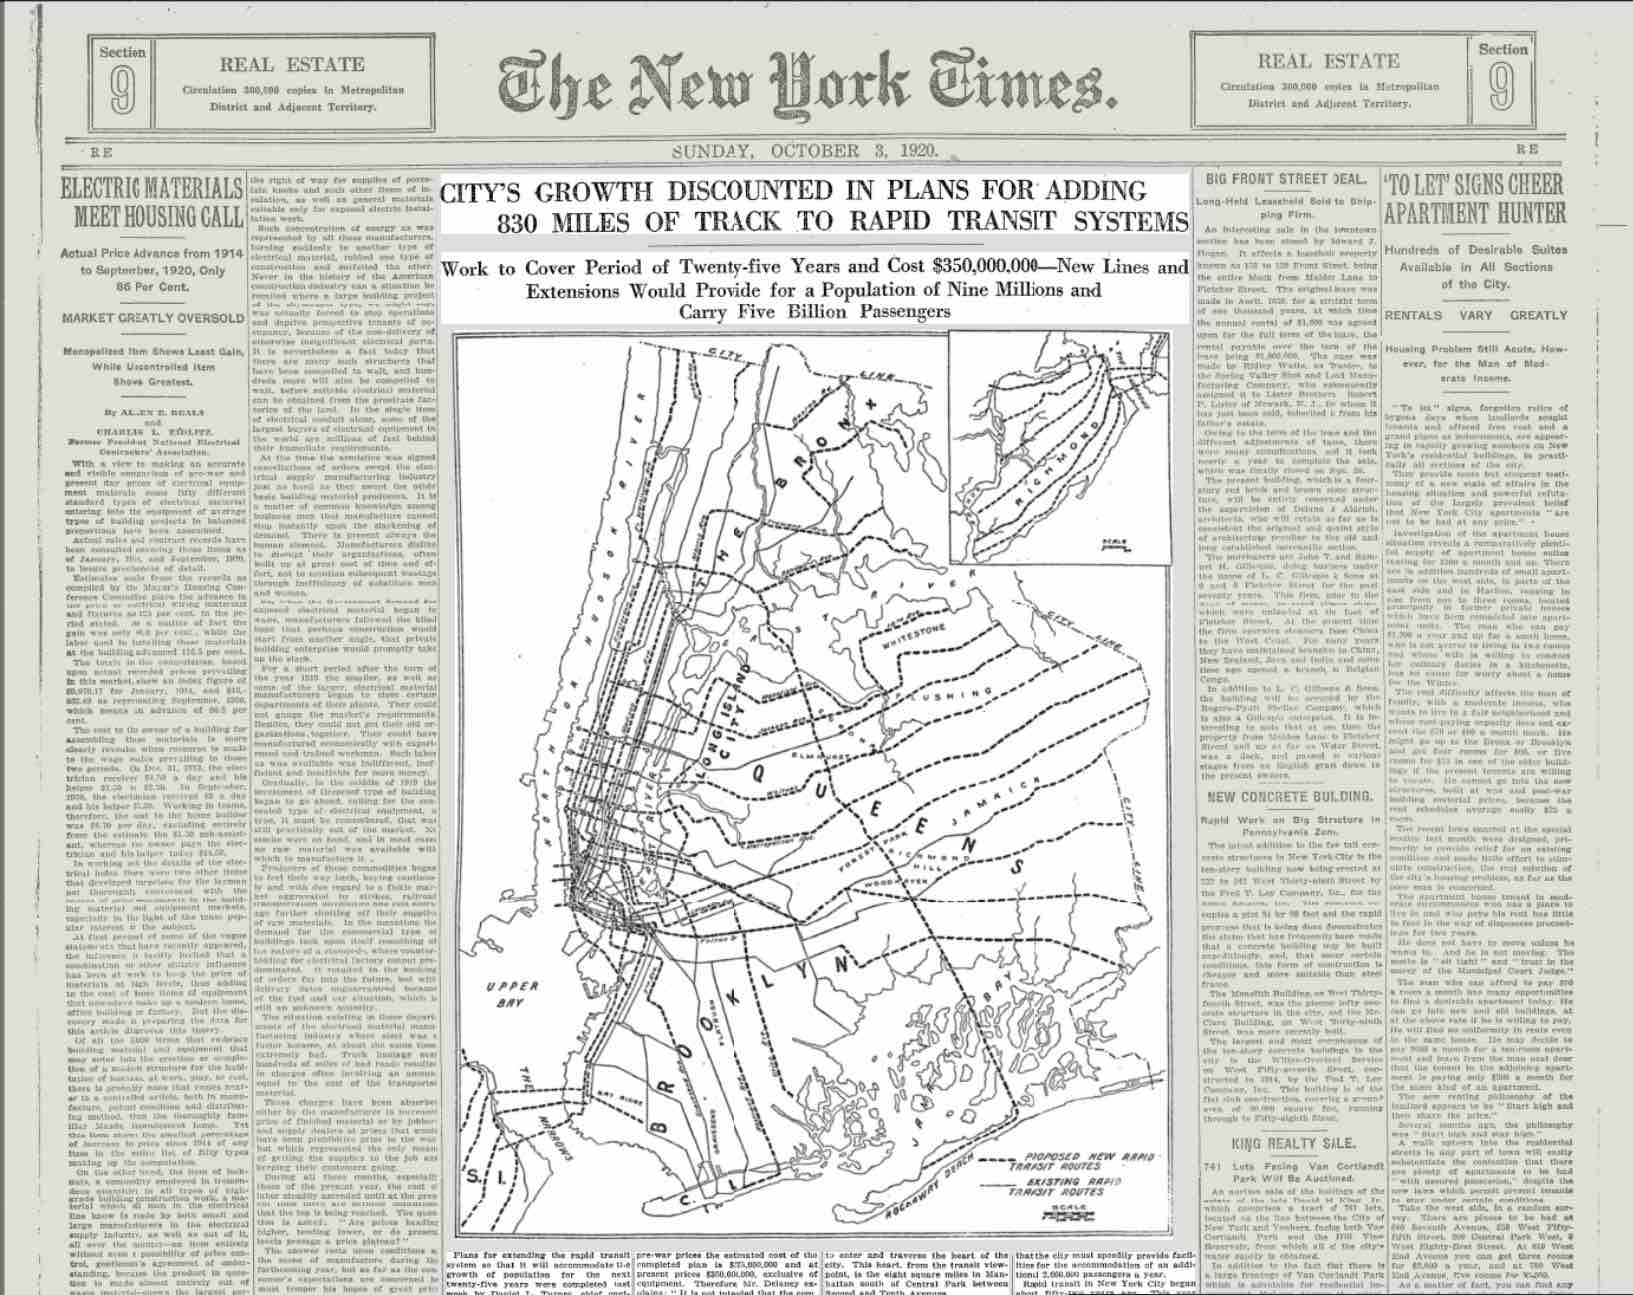 The New York Times - Sunday, October 3, 1920 (Image: courtesy of The New York Times)